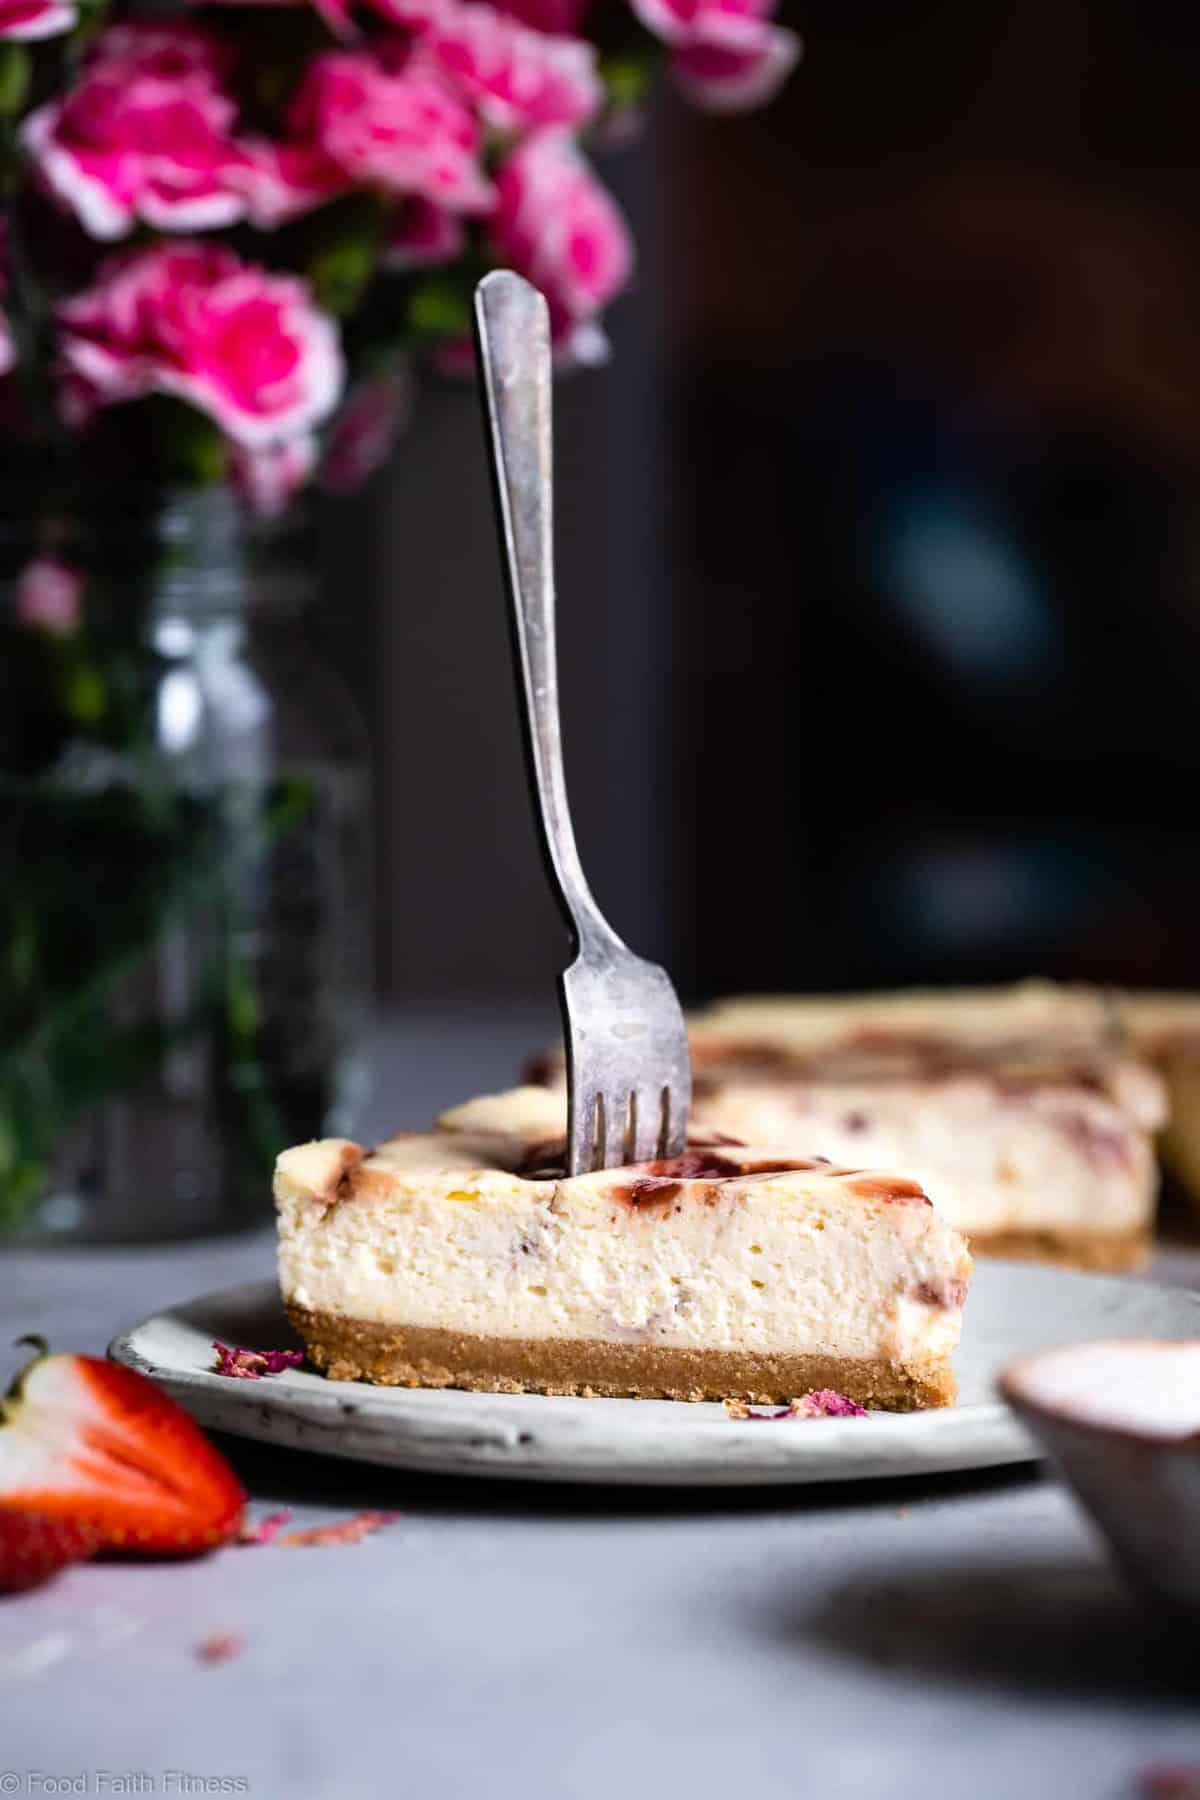 Gluten Free Strawberry Swirled Cottage Cheese Cheesecake -This Healthy Cottage Cheese Cheesecake is packed with protein and is so easy to make! Gluten free, grain free, better for you and SO creamy! | #Foodfaithfitness |